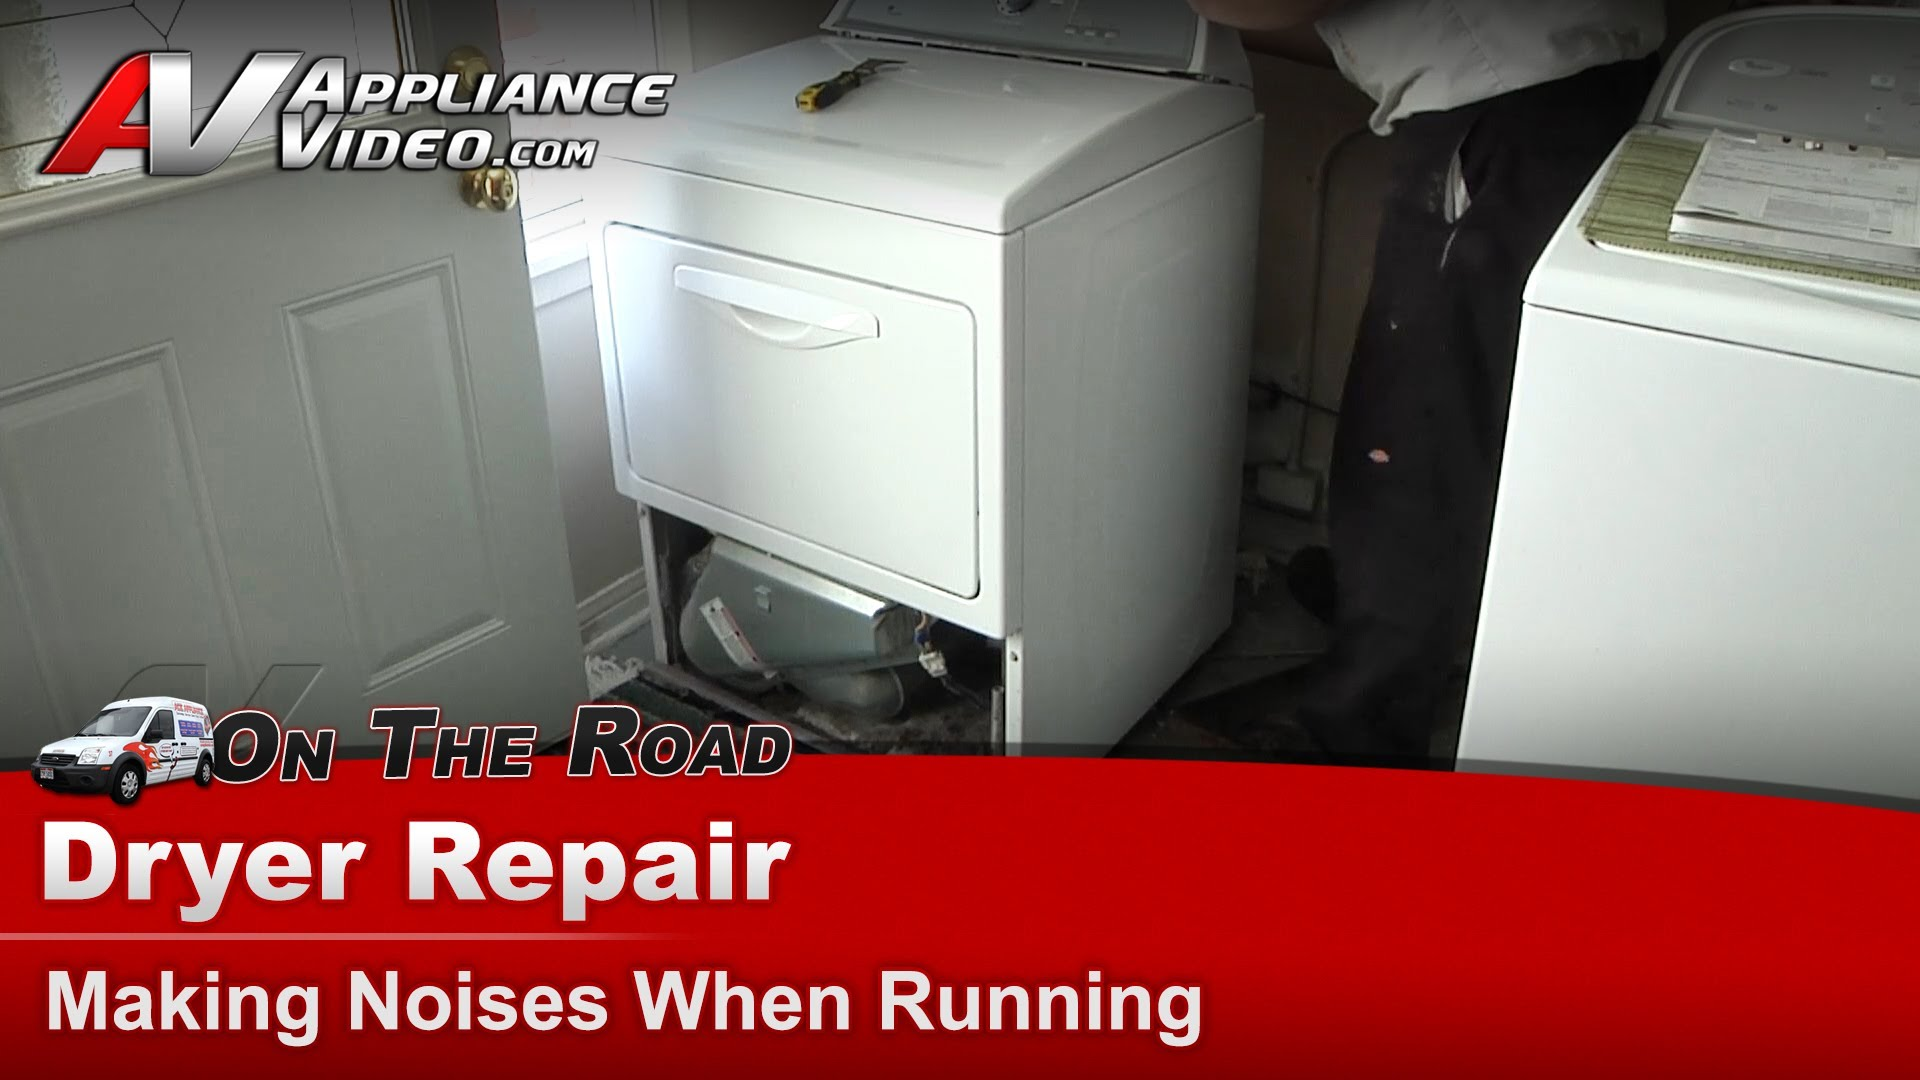 Whirlpool WED5500XW0 Dryer Repair  Making noises when running  Idler Pulley  Appliance Video